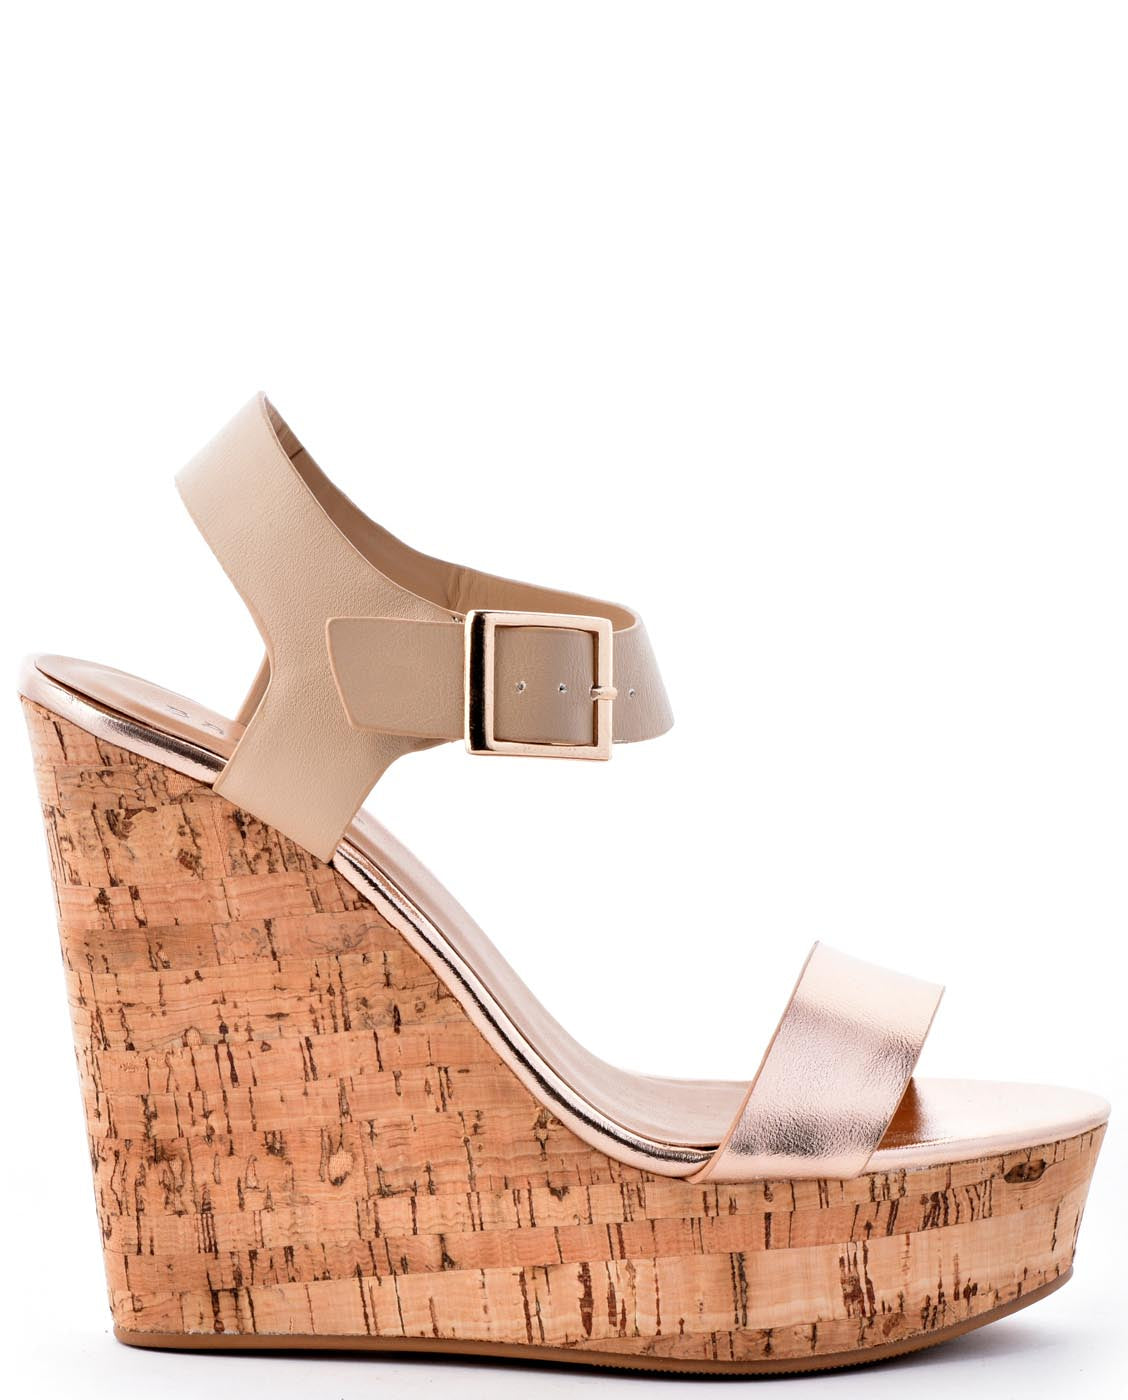 55071d34ab11 Strappy Cork Wedge Cork And Pu Leather Sandals - Fashion You Up